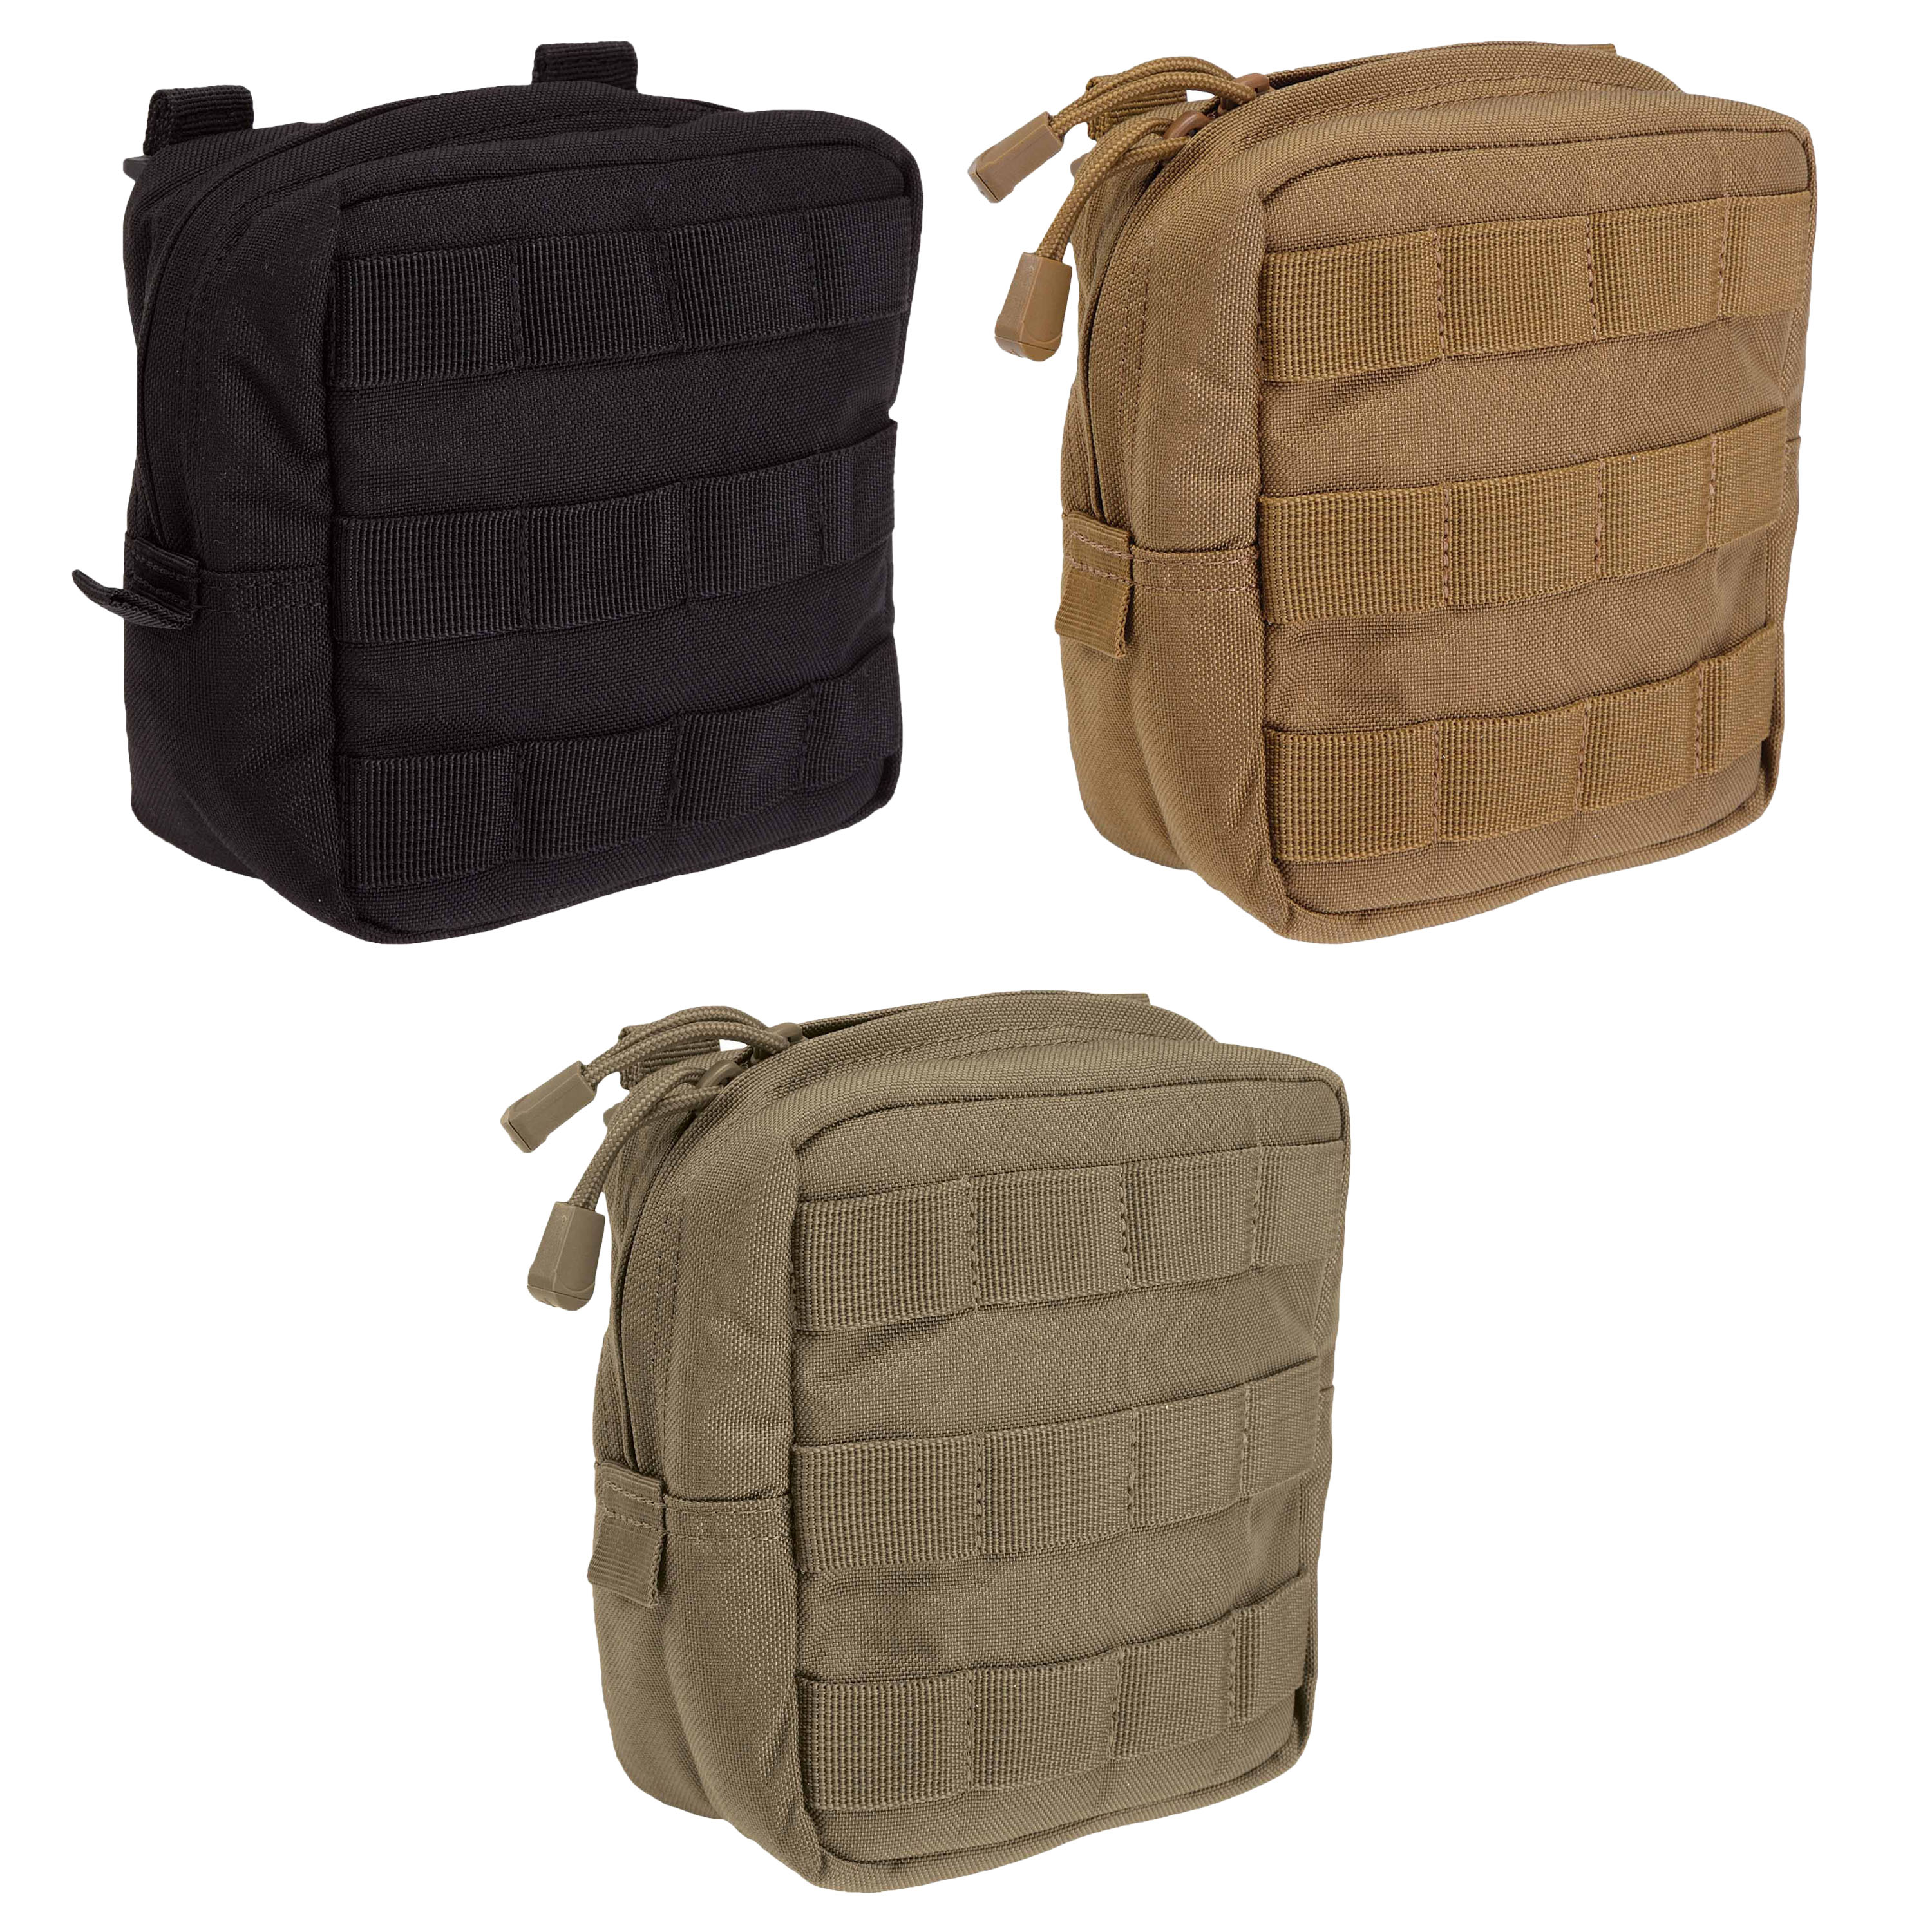 e5ed6beb315 5.11 Tactical 6x6 Military MOLLE Light Nylon Padded Pouch Gear Bag ...